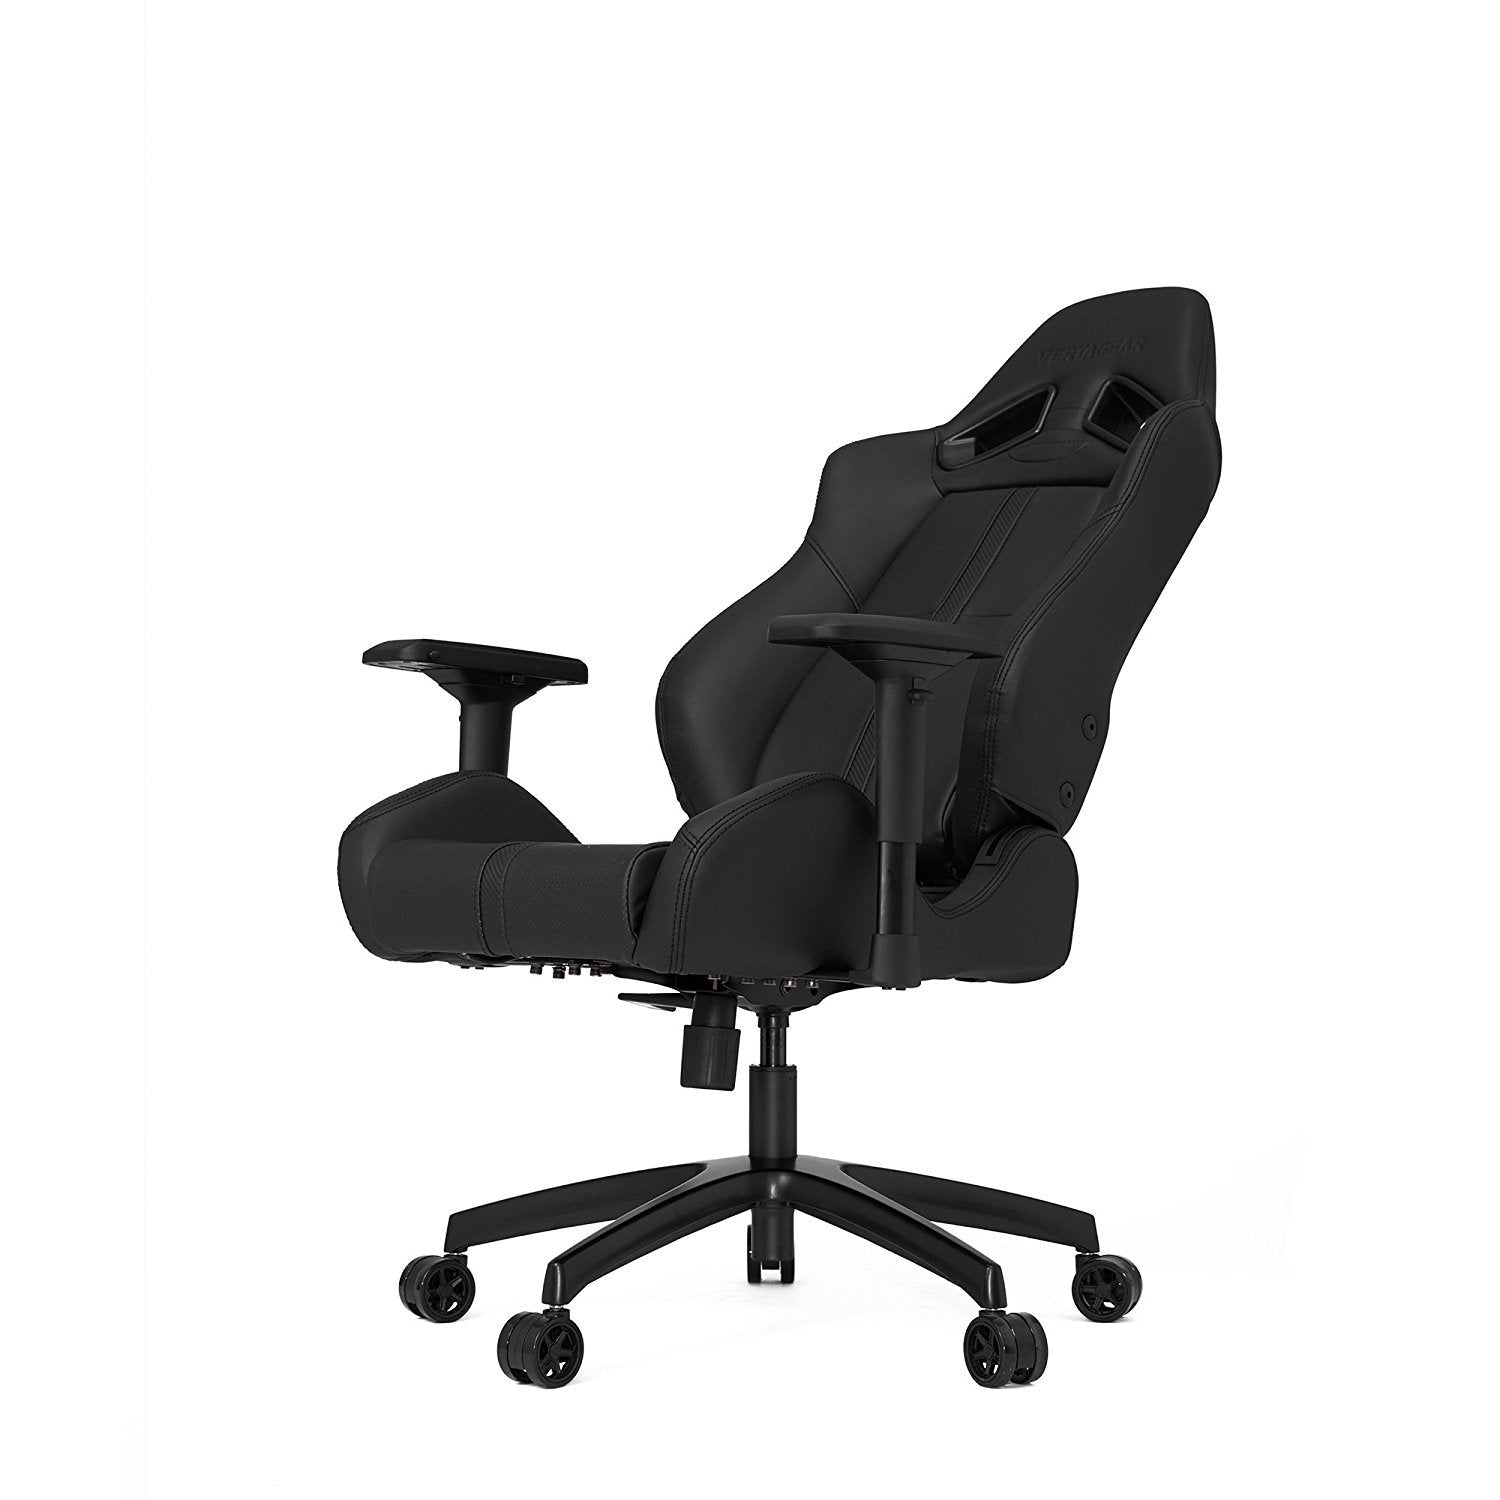 Vertagear Racing Series S-Line SL5000 Gaming Chair - Black/Carbon